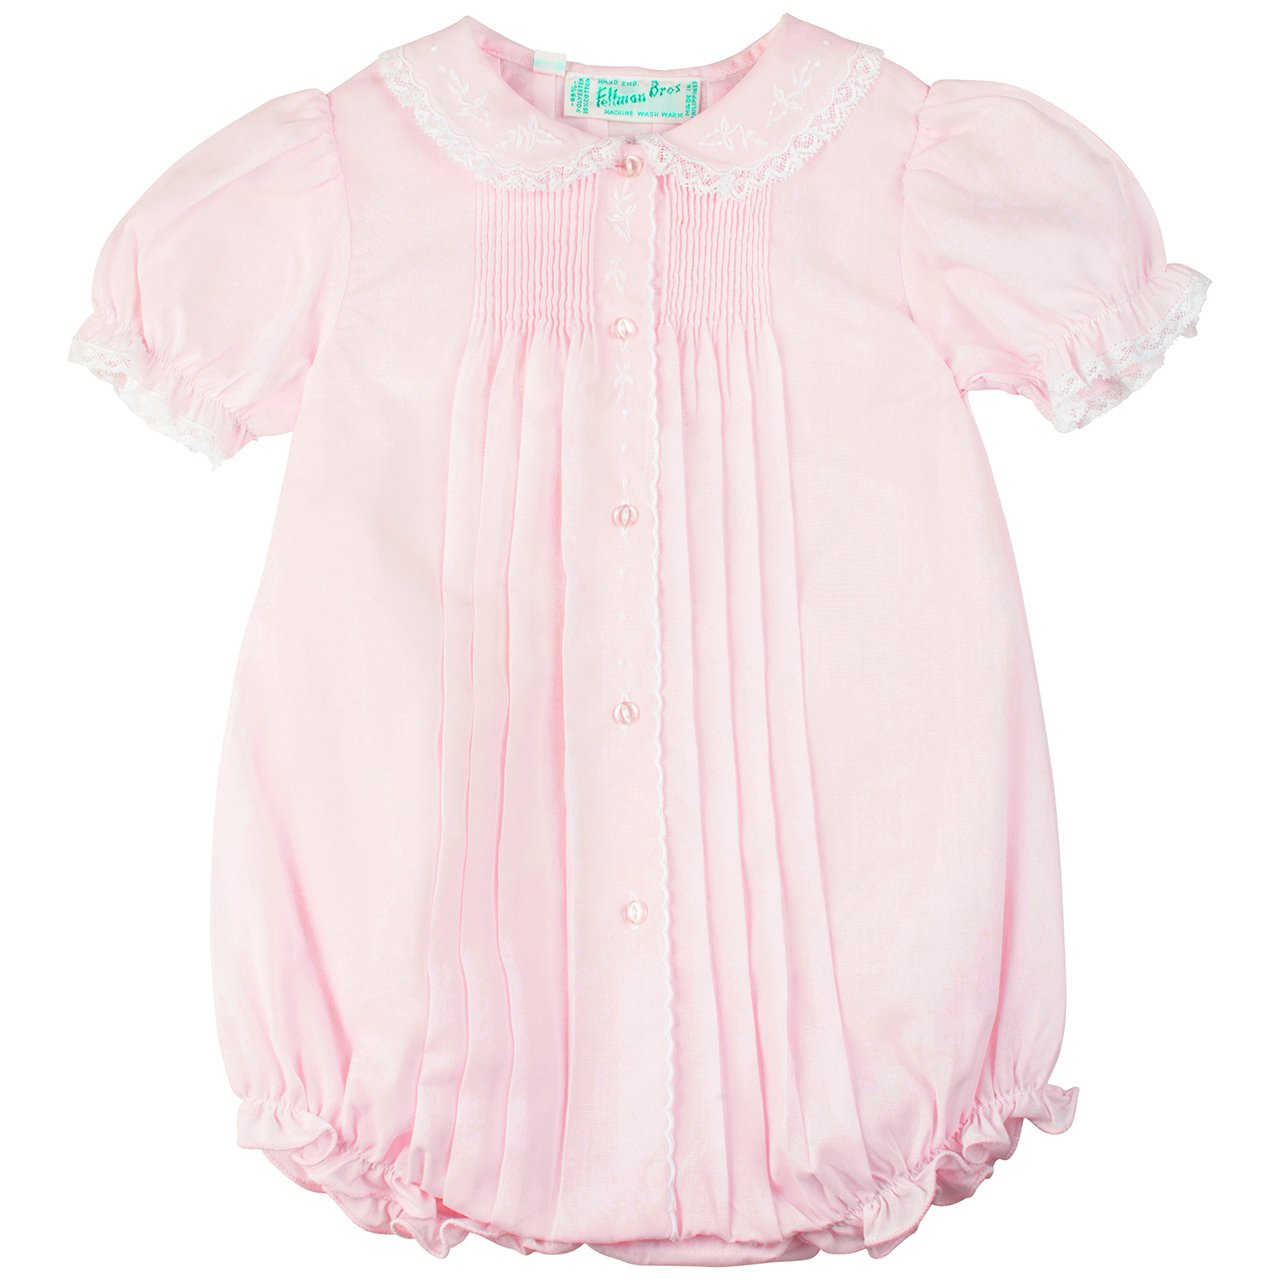 9894a5807828 Amazon.com  Baby Girls Pink Dressy Bubble Outfit Feltman Brothers  Clothing